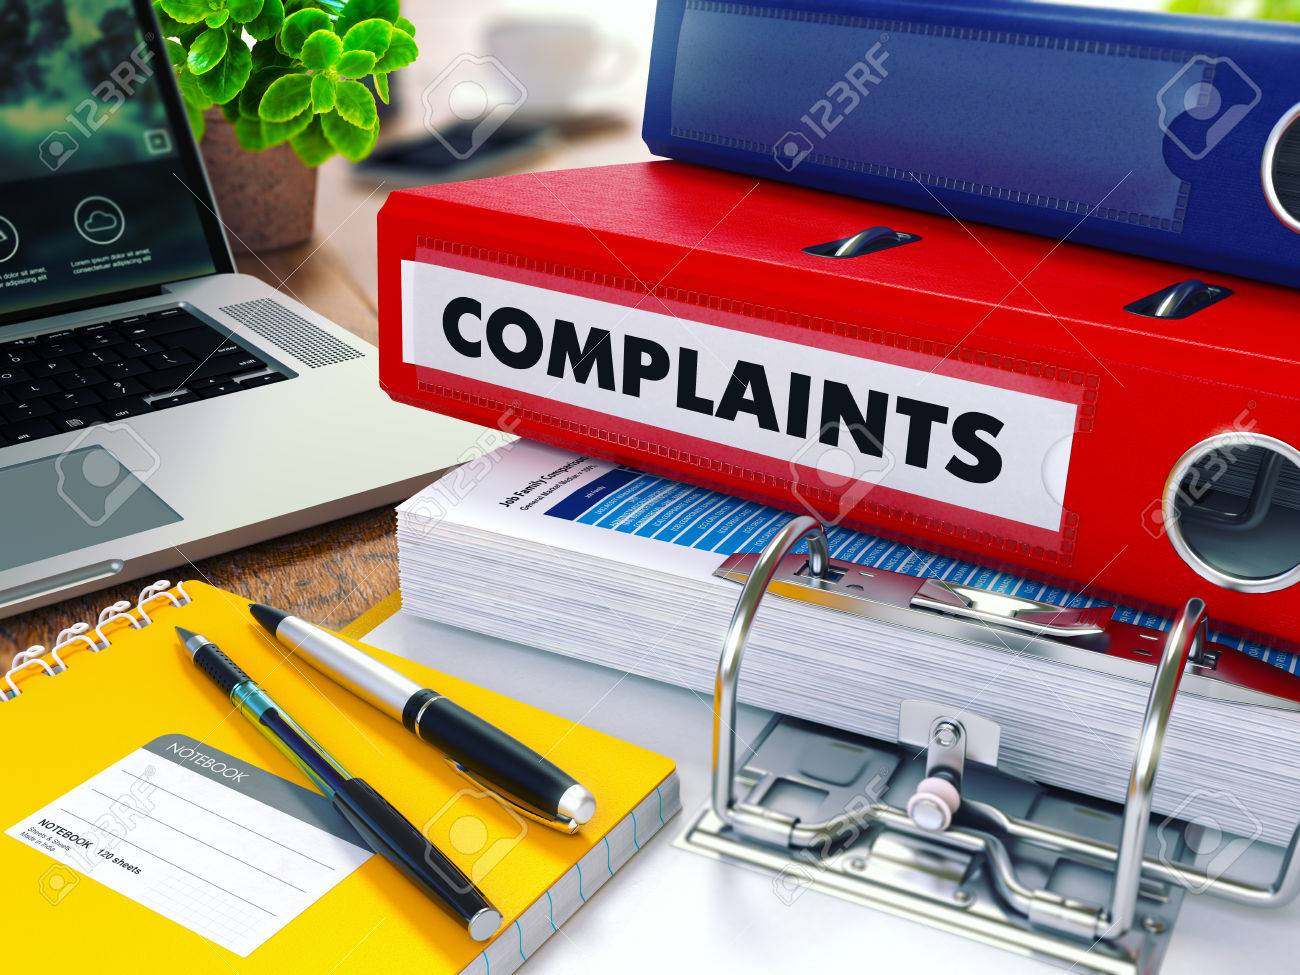 Complaints - Red Ring Binder on Office Desktop with Office Supplies and Modern Laptop. Business Concept on Blurred Background. Toned Illustration. Standard-Bild - 46207871